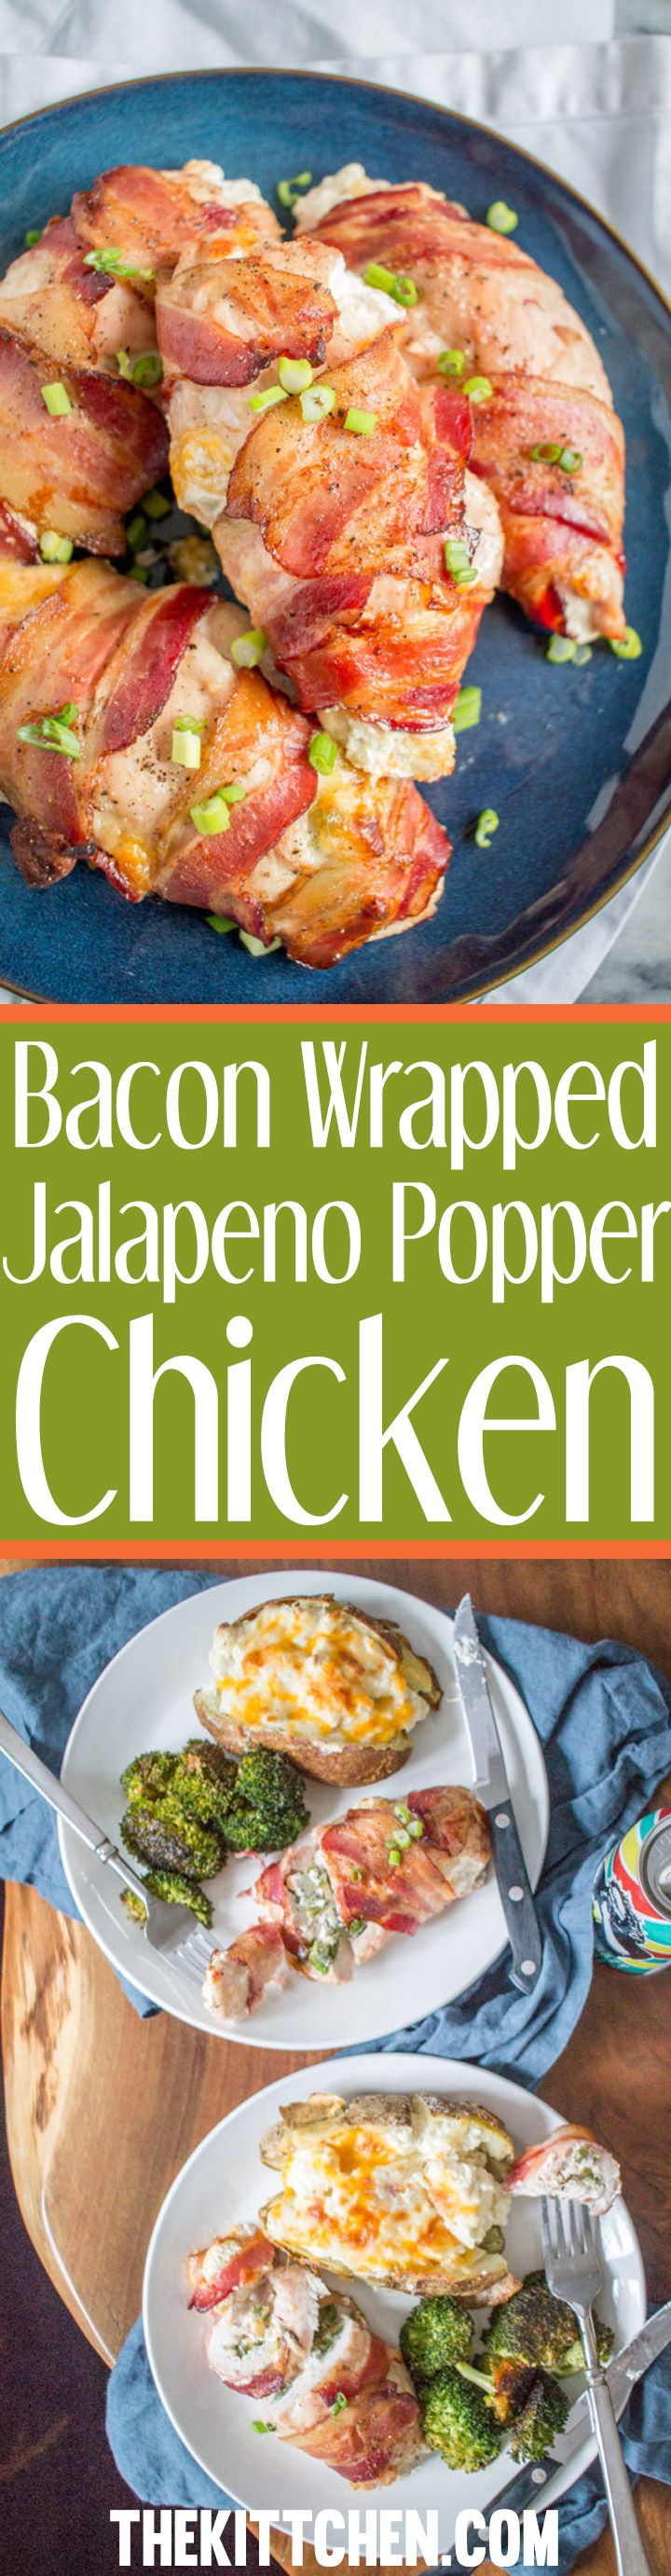 You will love this easy and delicious dinner recipe for Bacon Wrapped Jalapeño Popper Chicken! It's an easy weeknight dinner that takes only 10 minutes of active preparation time.